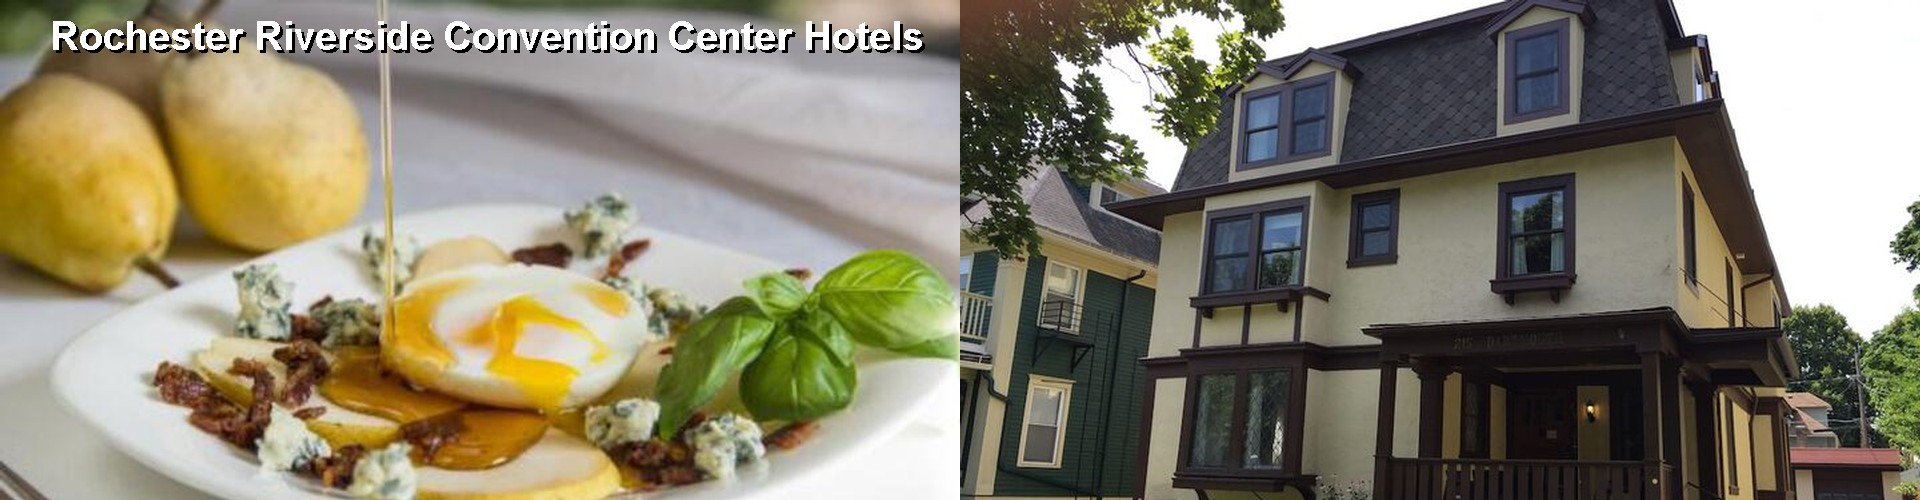 $54+ Hotels Near Rochester Riverside Convention Center NY